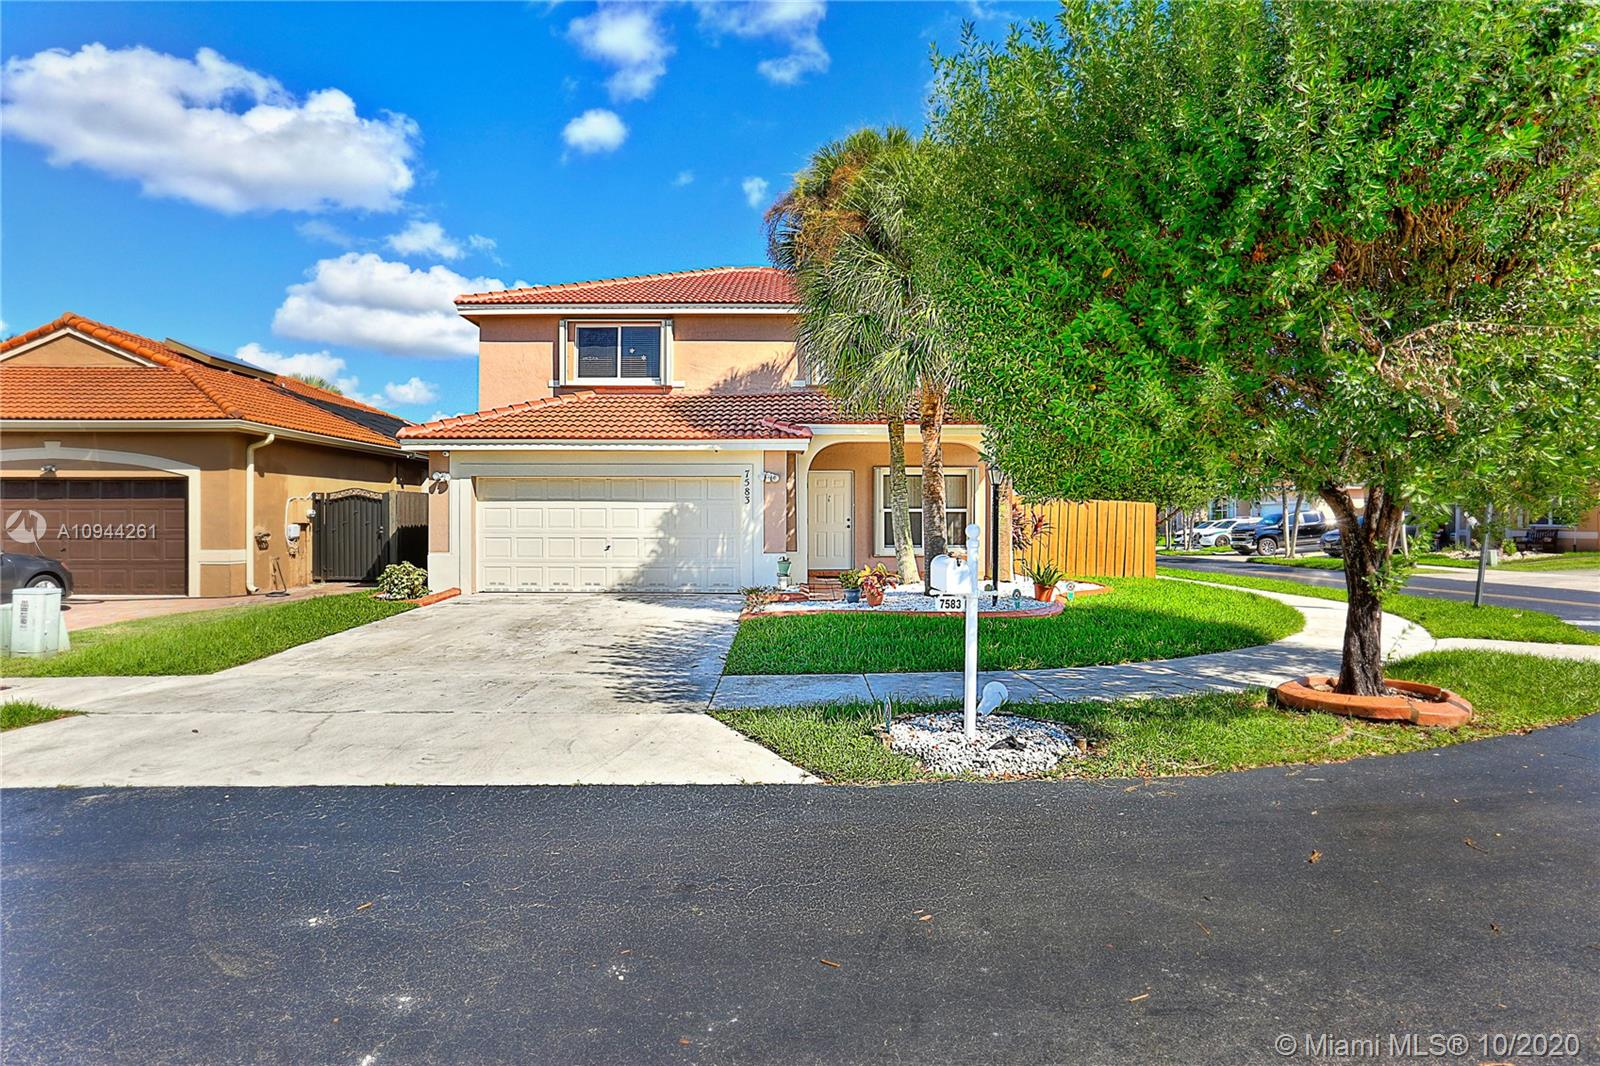 7583 SW 166th Ct, Miami, Florida 33193, 4 Bedrooms Bedrooms, 8 Rooms Rooms,3 BathroomsBathrooms,Residential,For Sale,7583 SW 166th Ct,A10944261